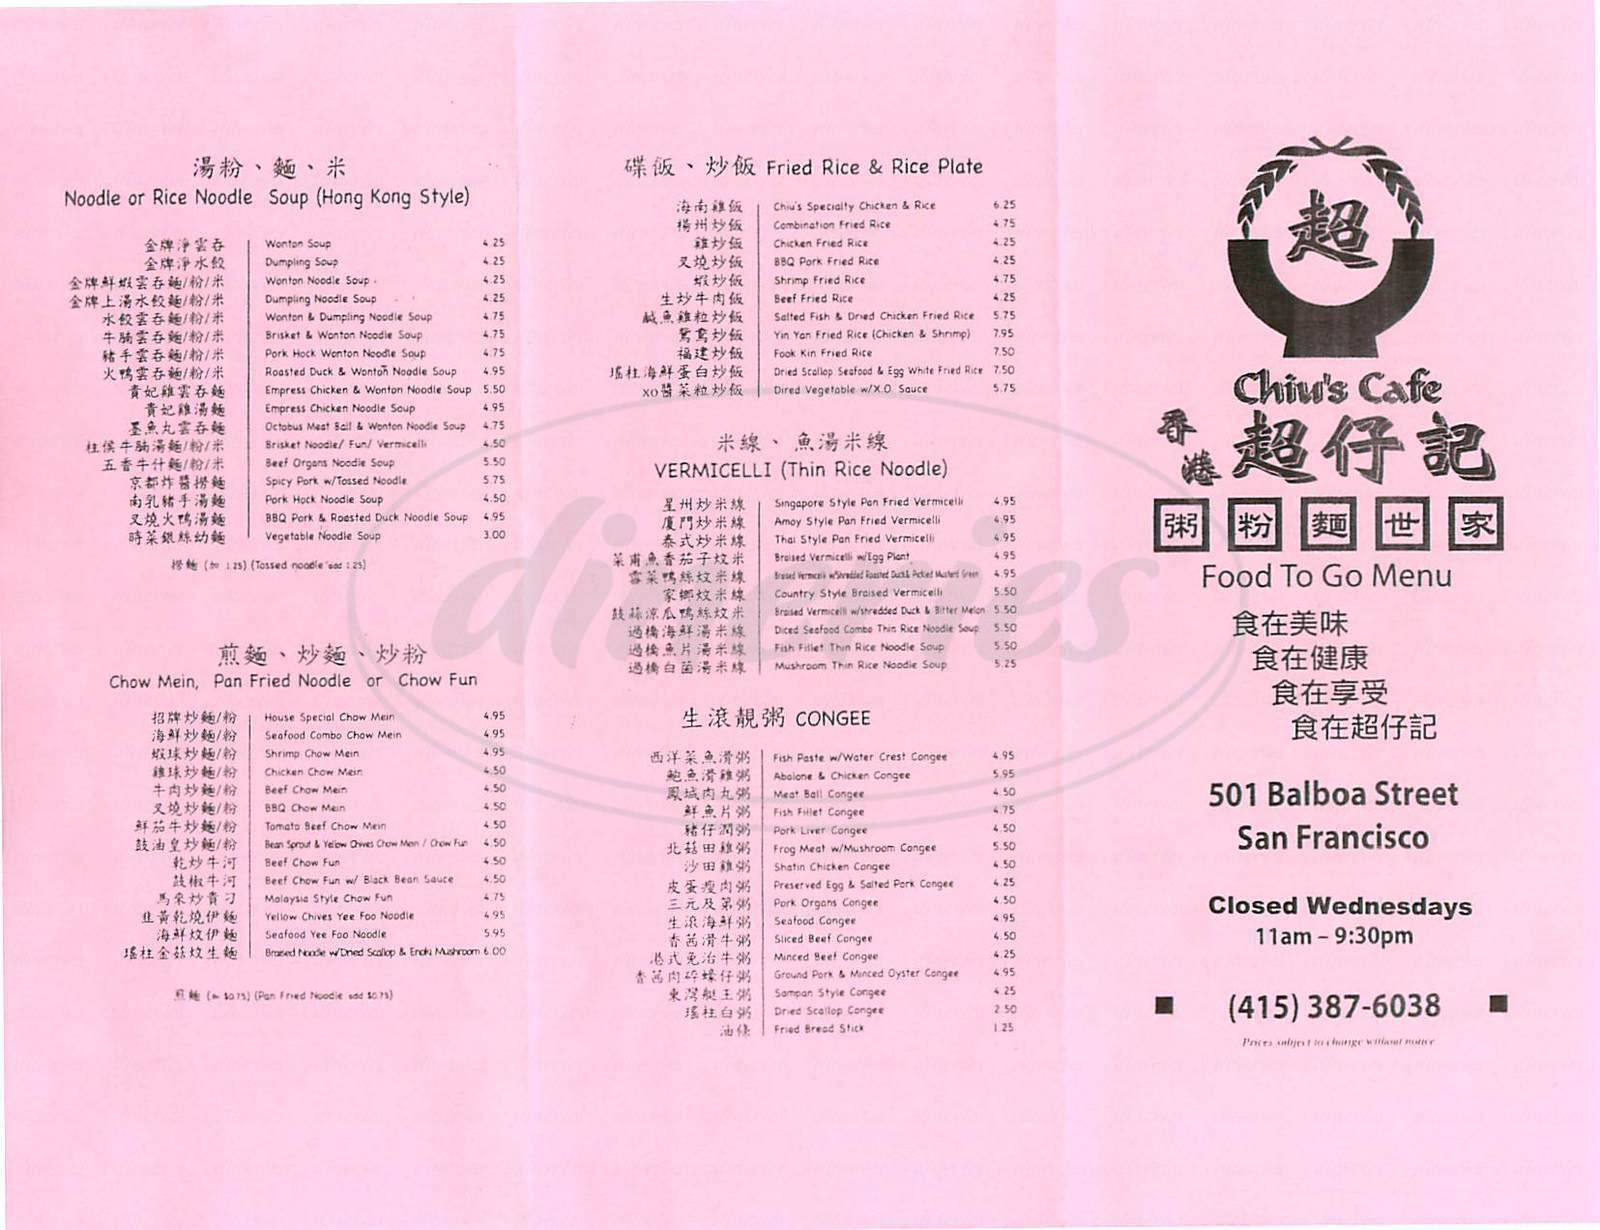 menu for Chiu's Café